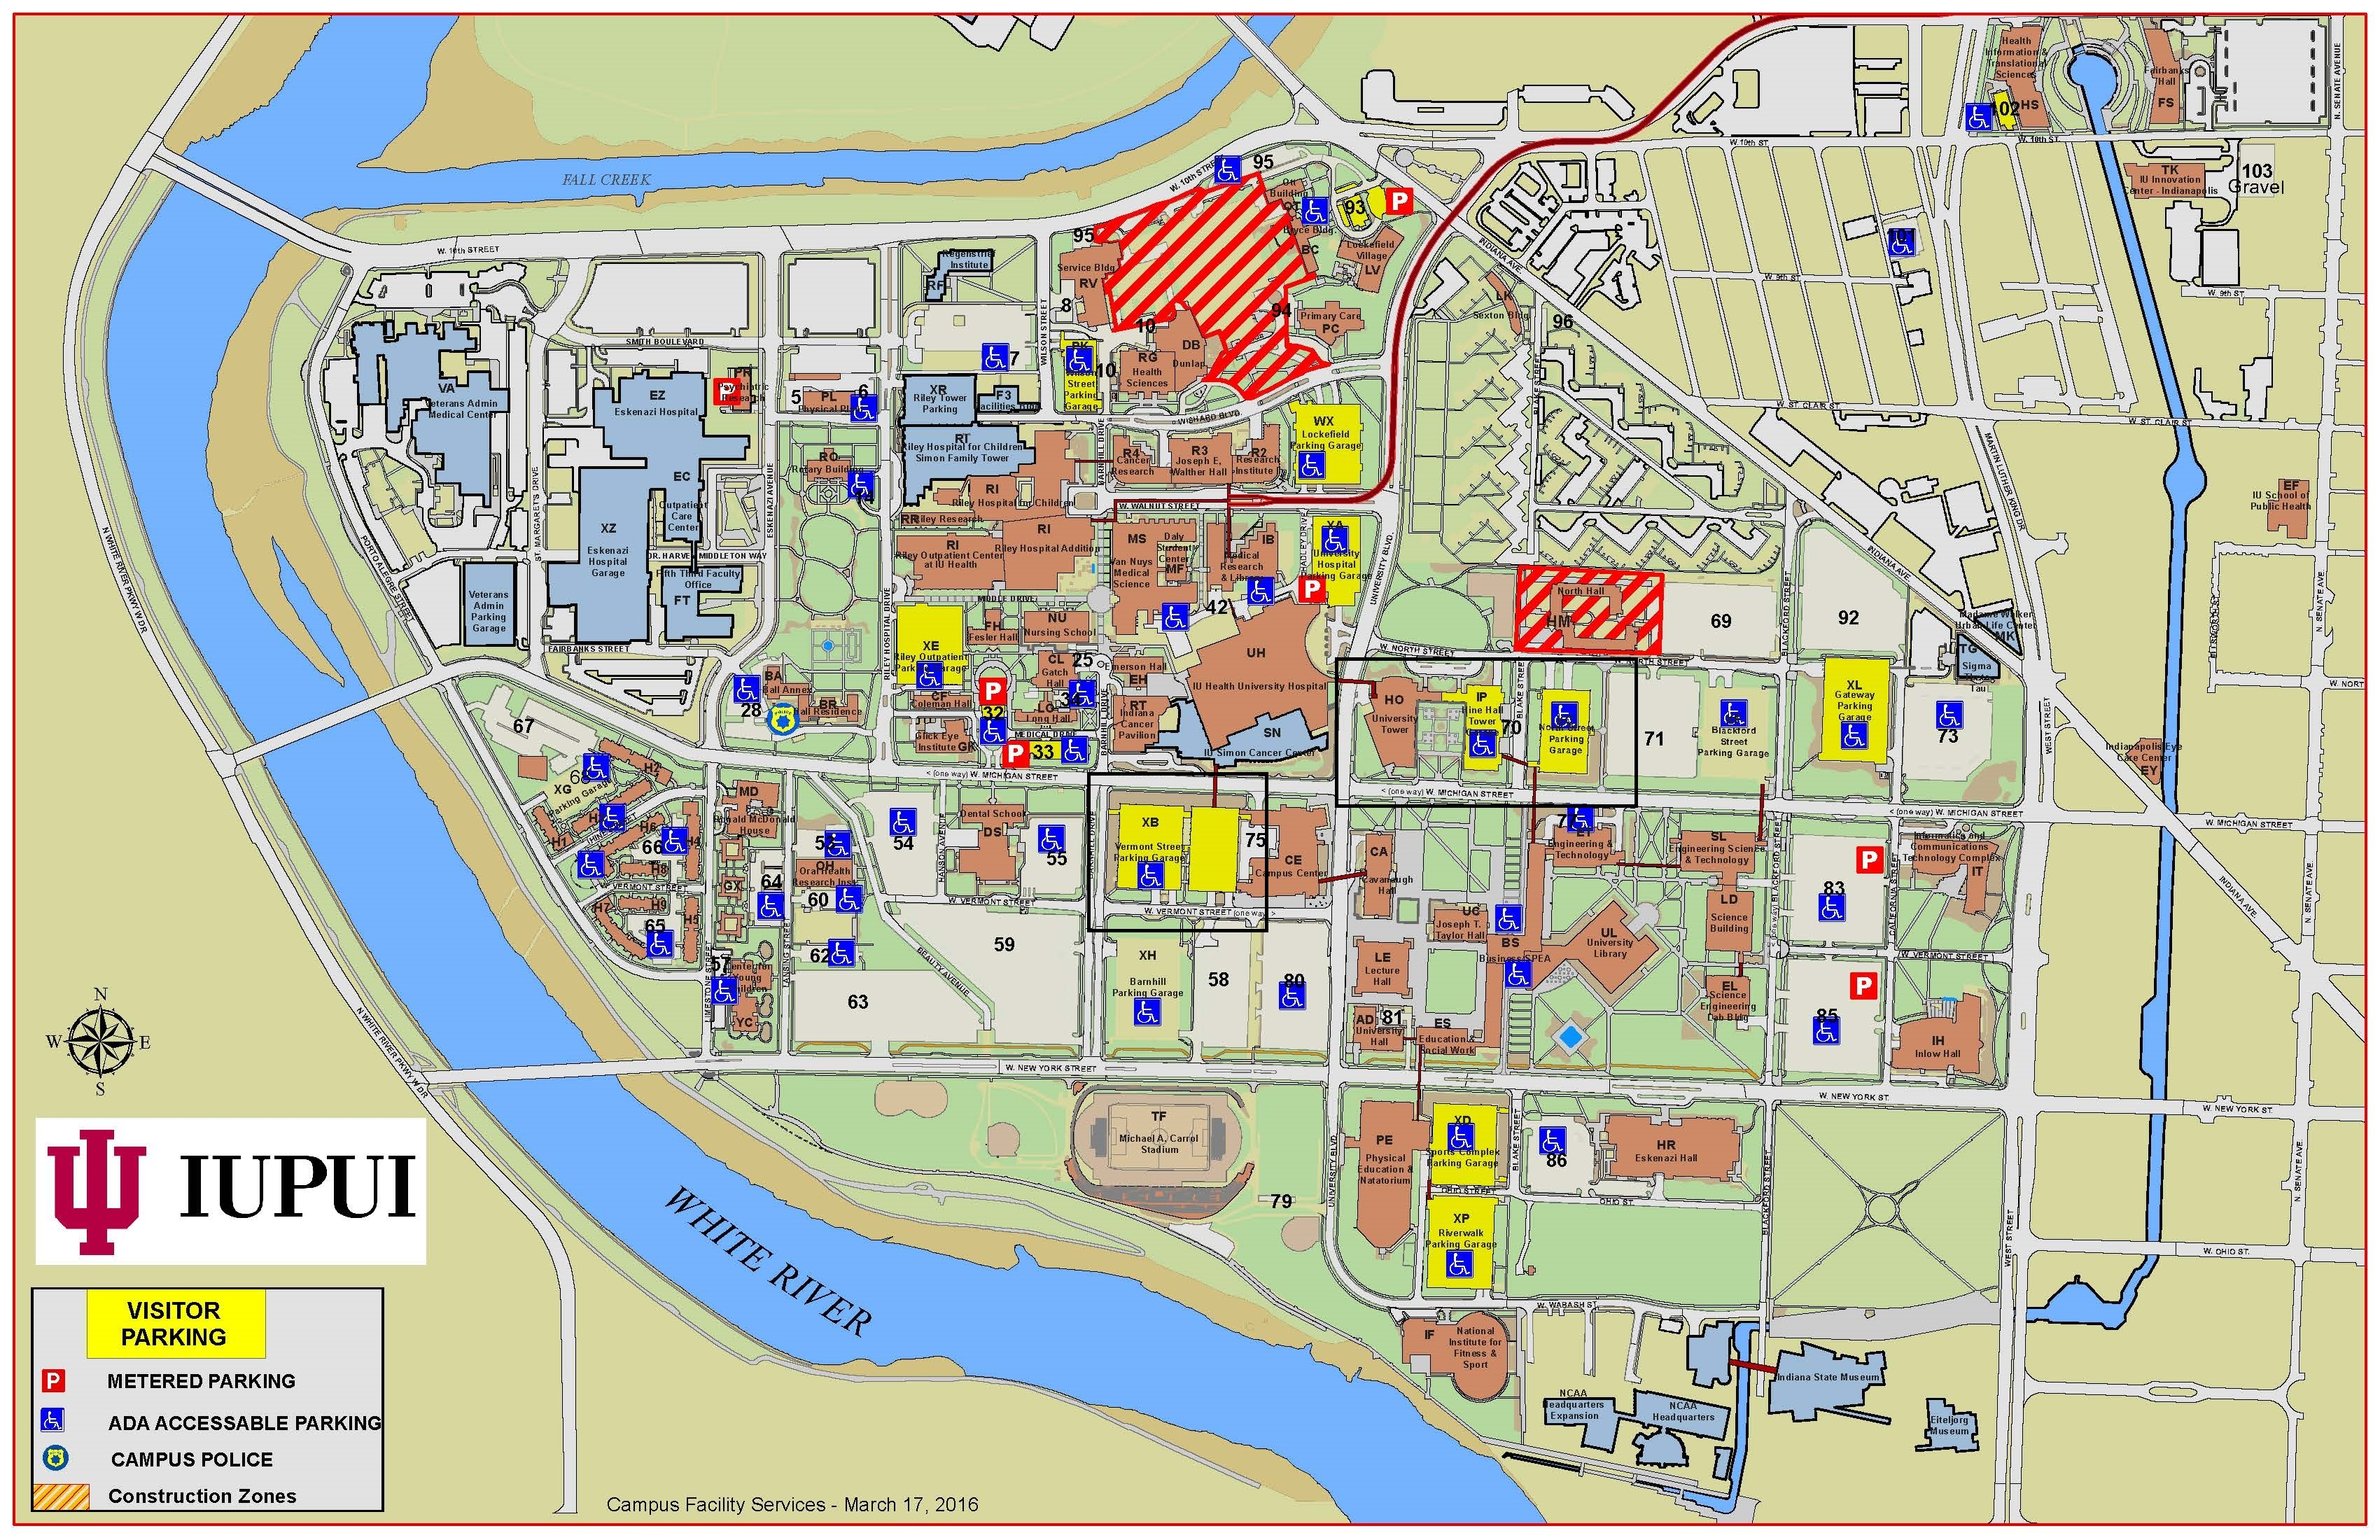 Iupui Parking Map Directions and Parking Information: 2017 IU Online Conference: IU